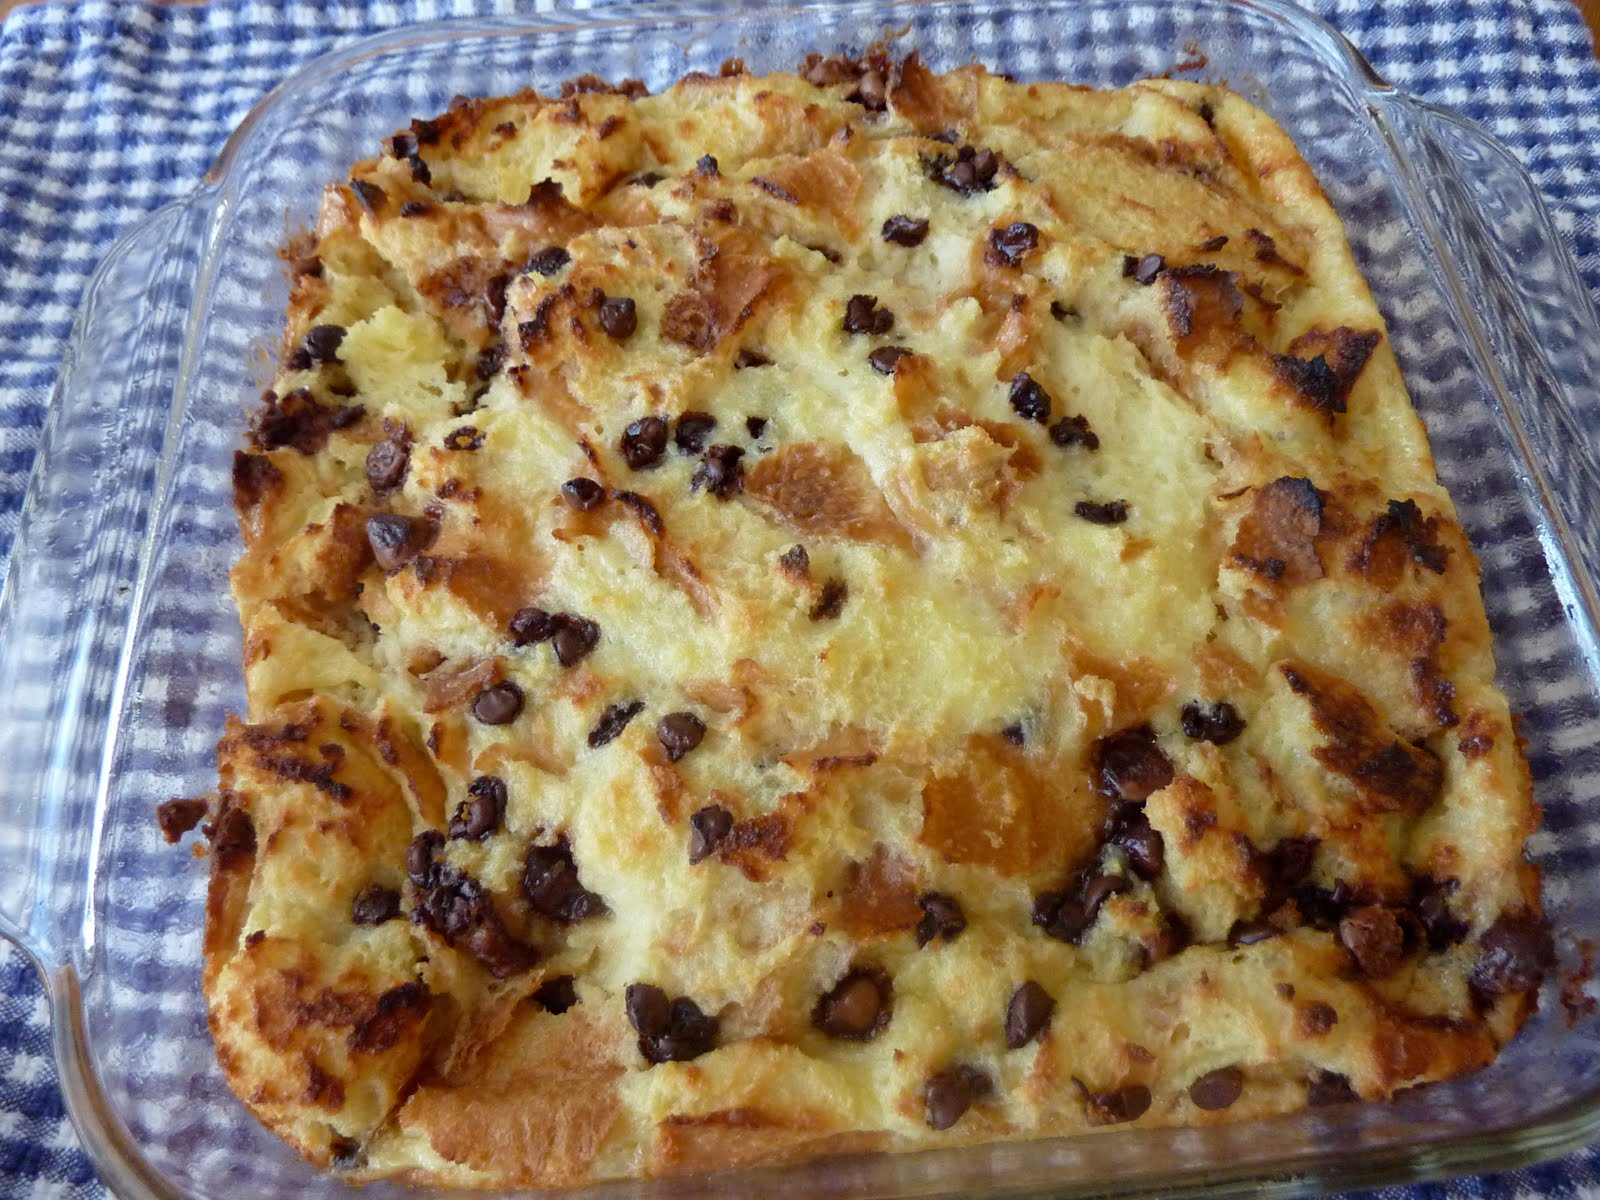 The Open Fridge: Chocolate Chip Bread Pudding